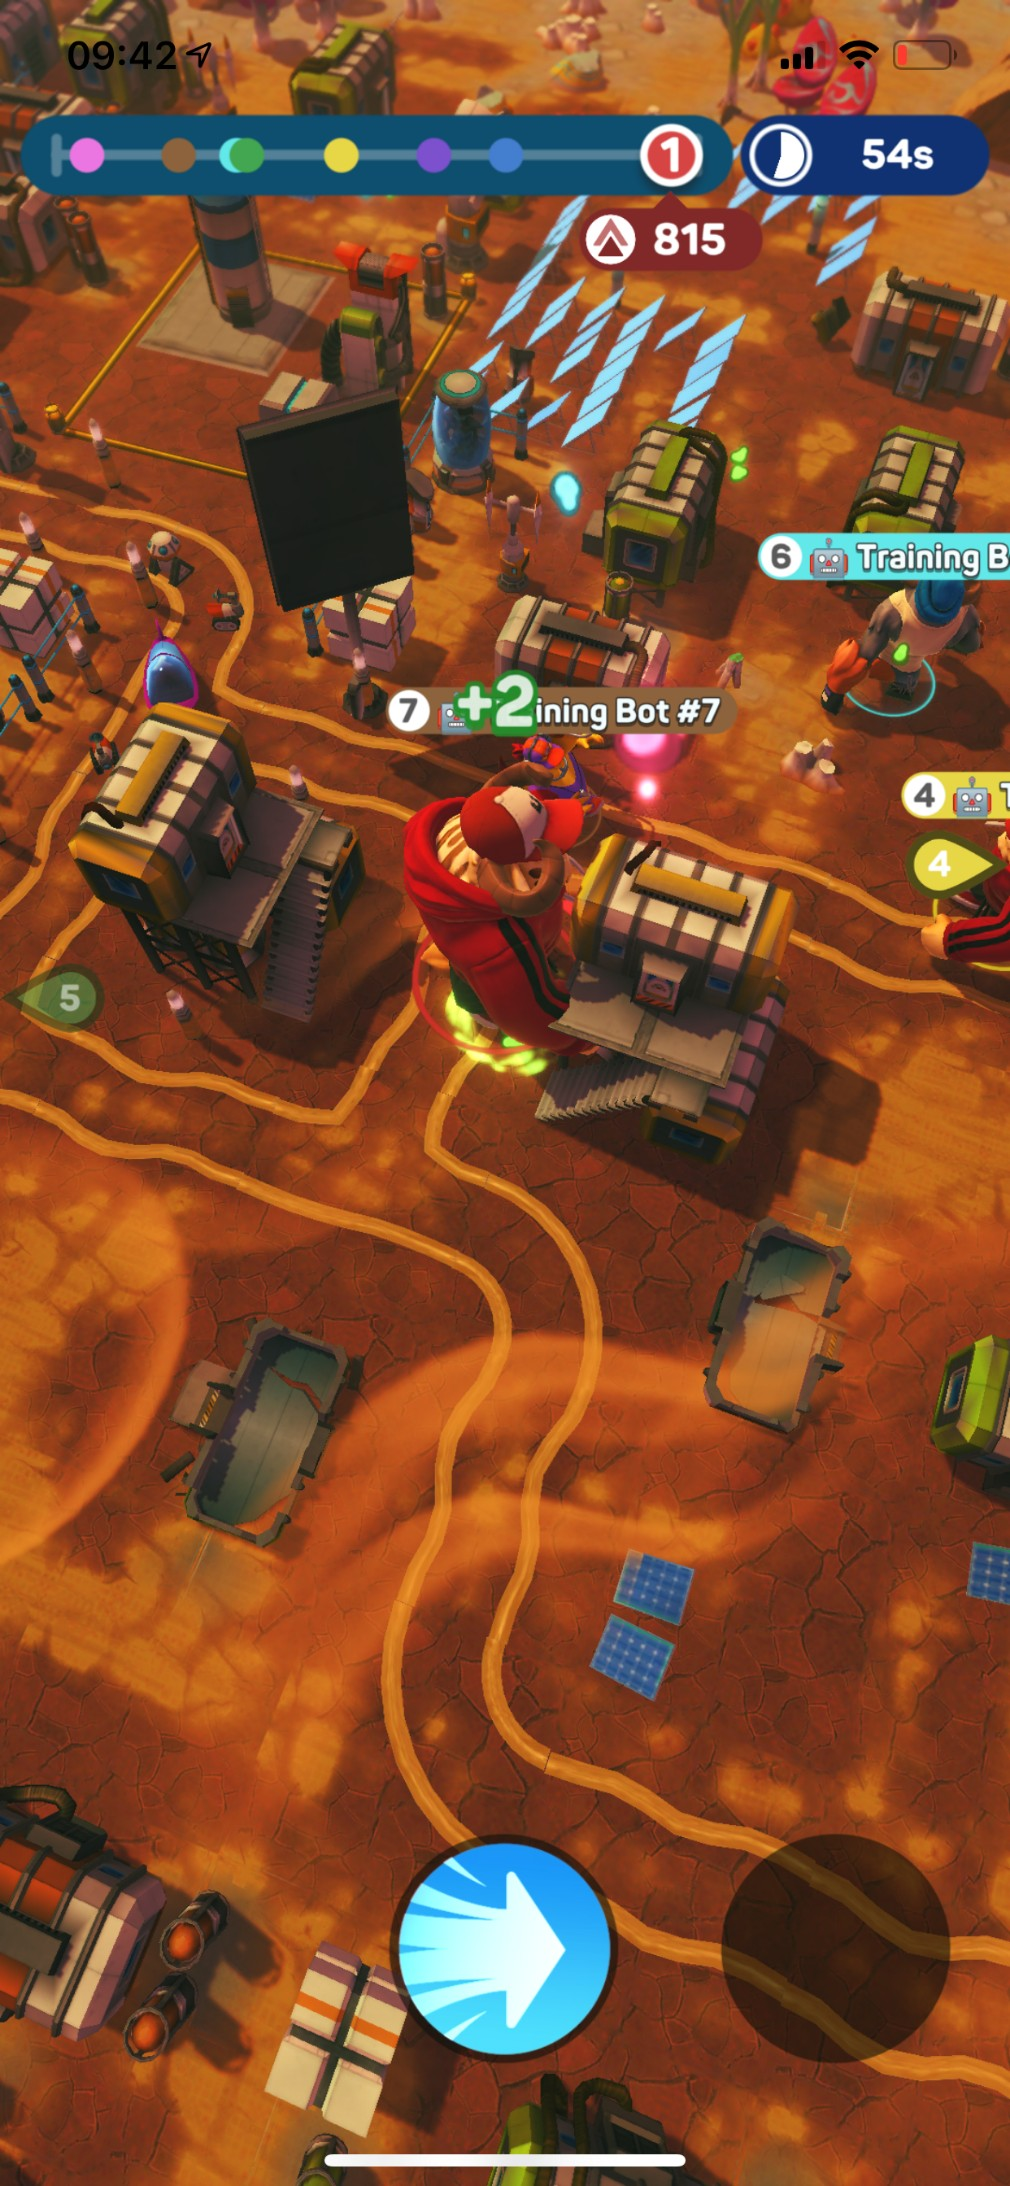 Monsters With Attitude iOS screenshot - Smashing some buildings